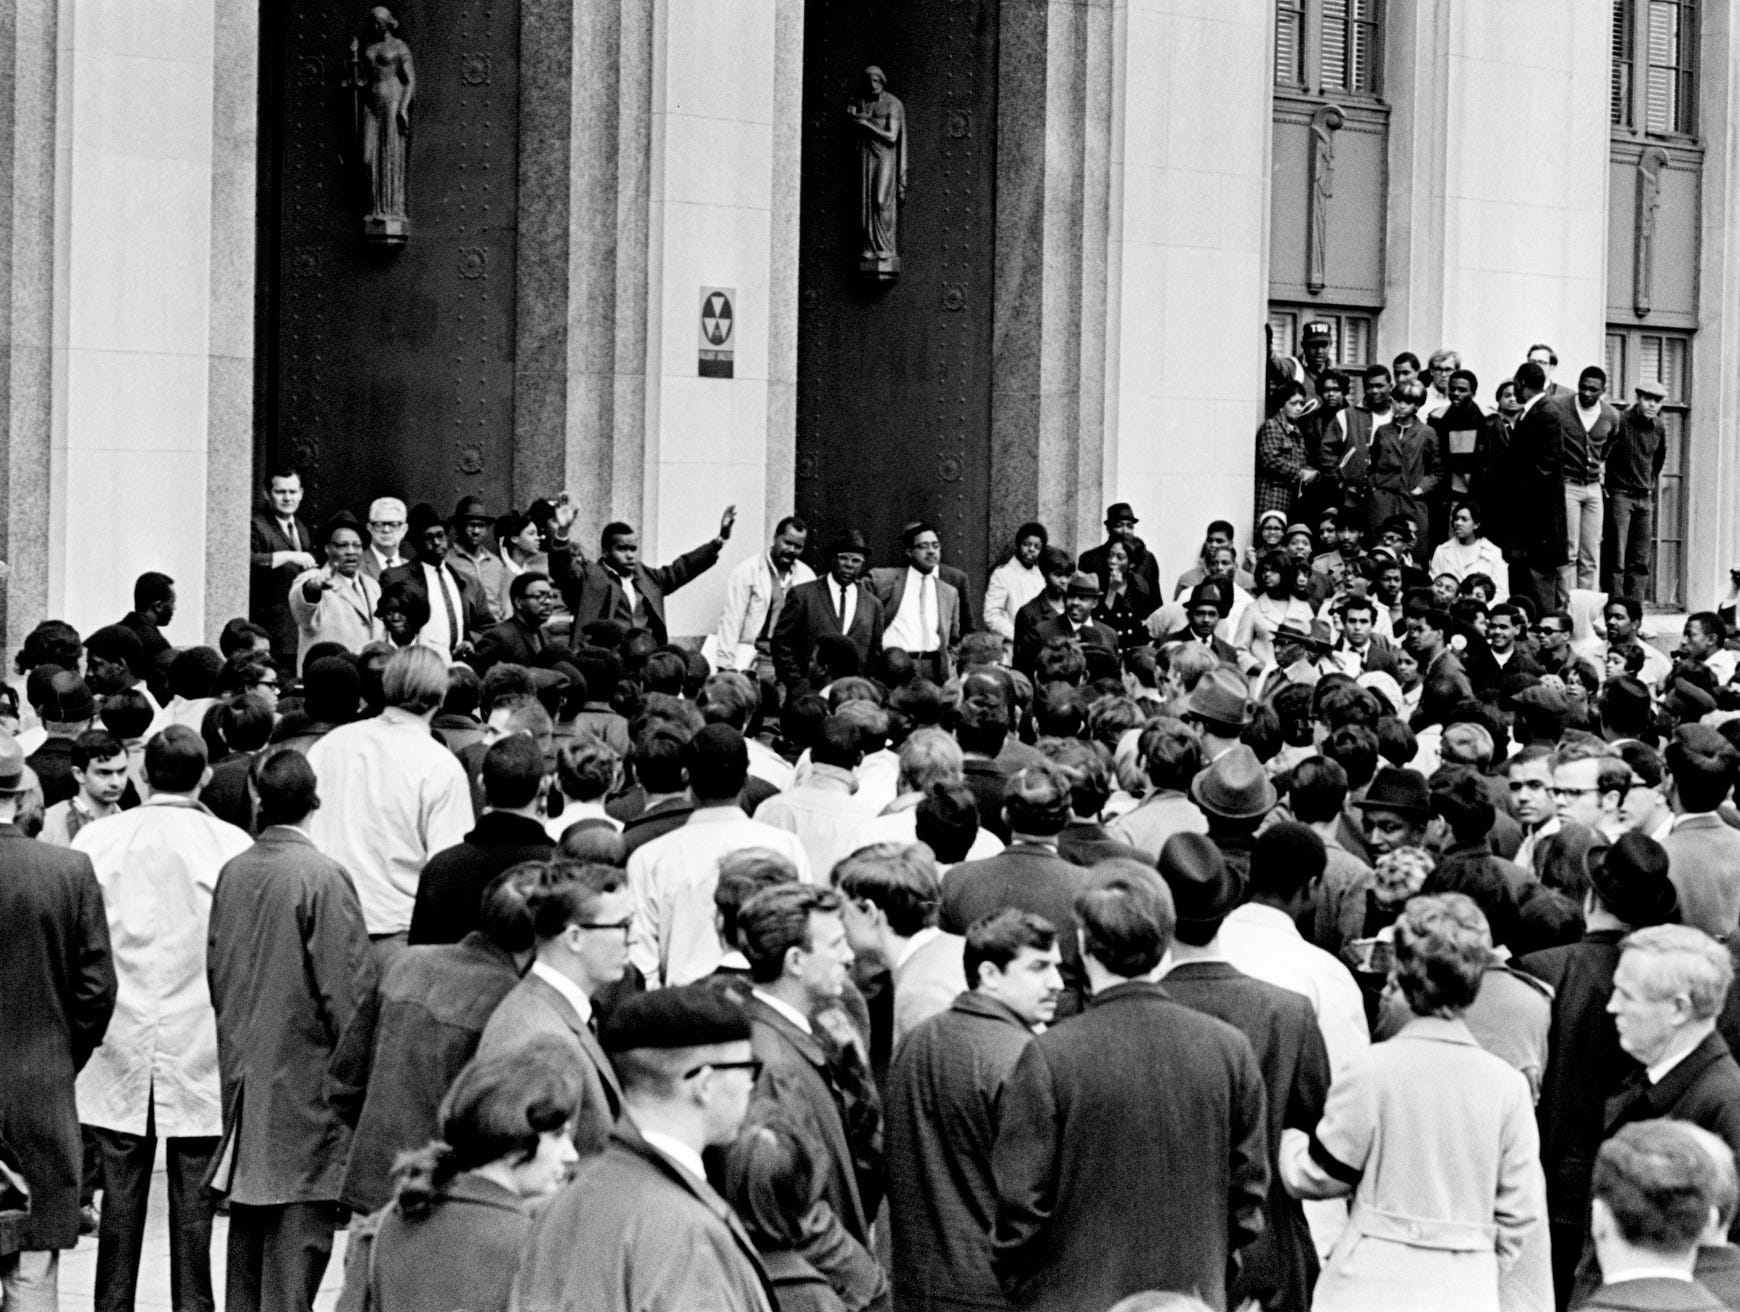 "Outside the city hall and courthouse building, a black leader raises his hands for quiet as a crowd of 1,000 chants, ""We want Briley."" After many in the crowd attended memorial services for the Rev. Martin Luther King Jr., they gathered for Mayor Beverly Briley on April 5, 1968. He met with black leaders in his office but declined to address the crowd outside."